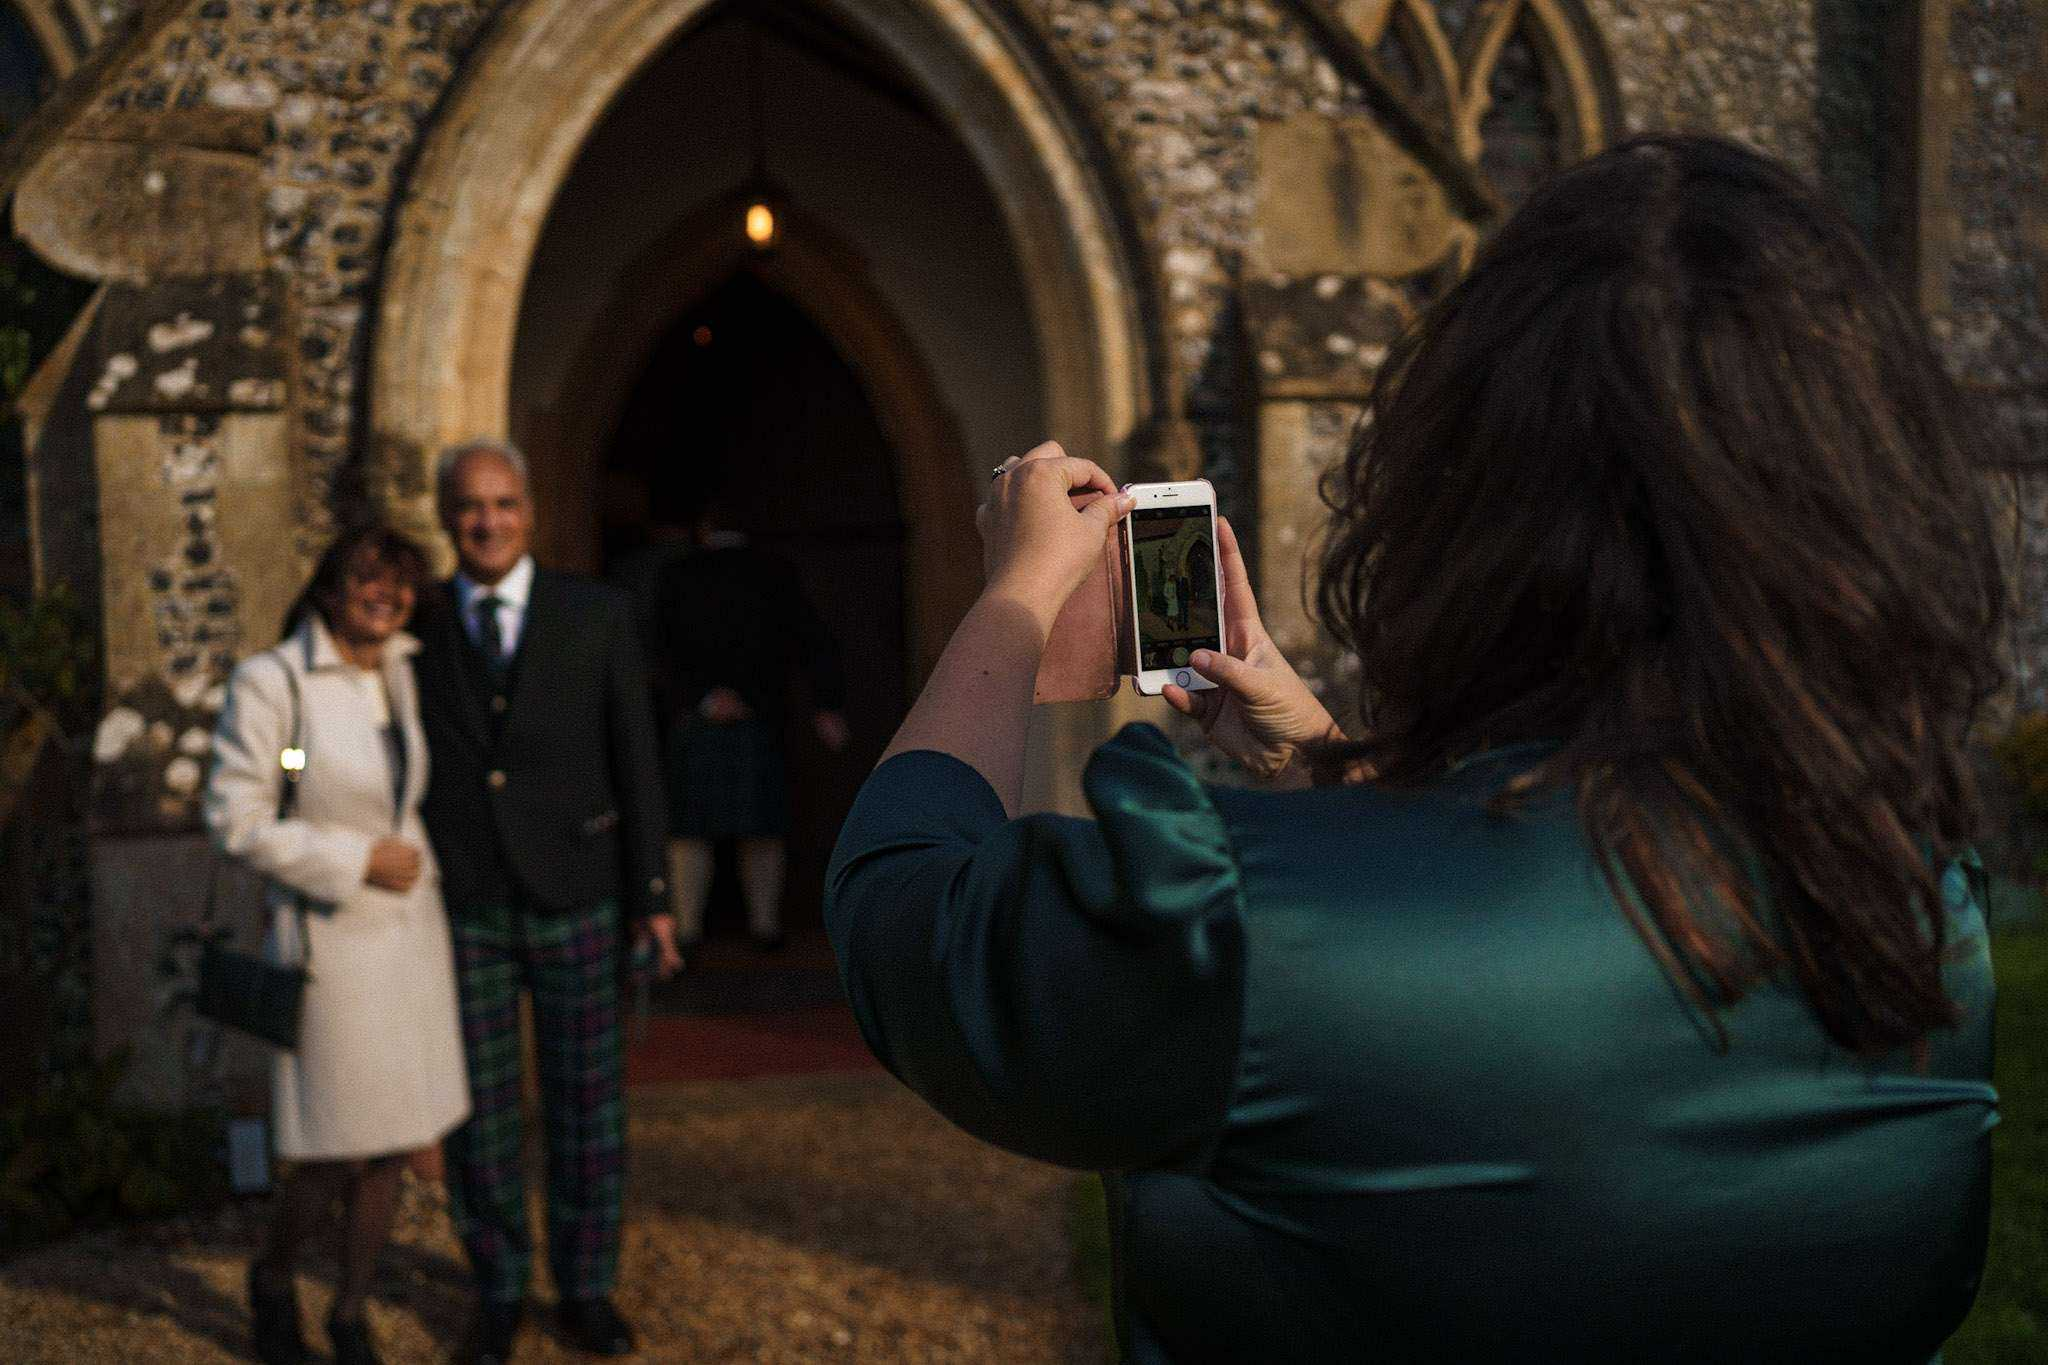 A wedding guest taking a photo before the bride arrives